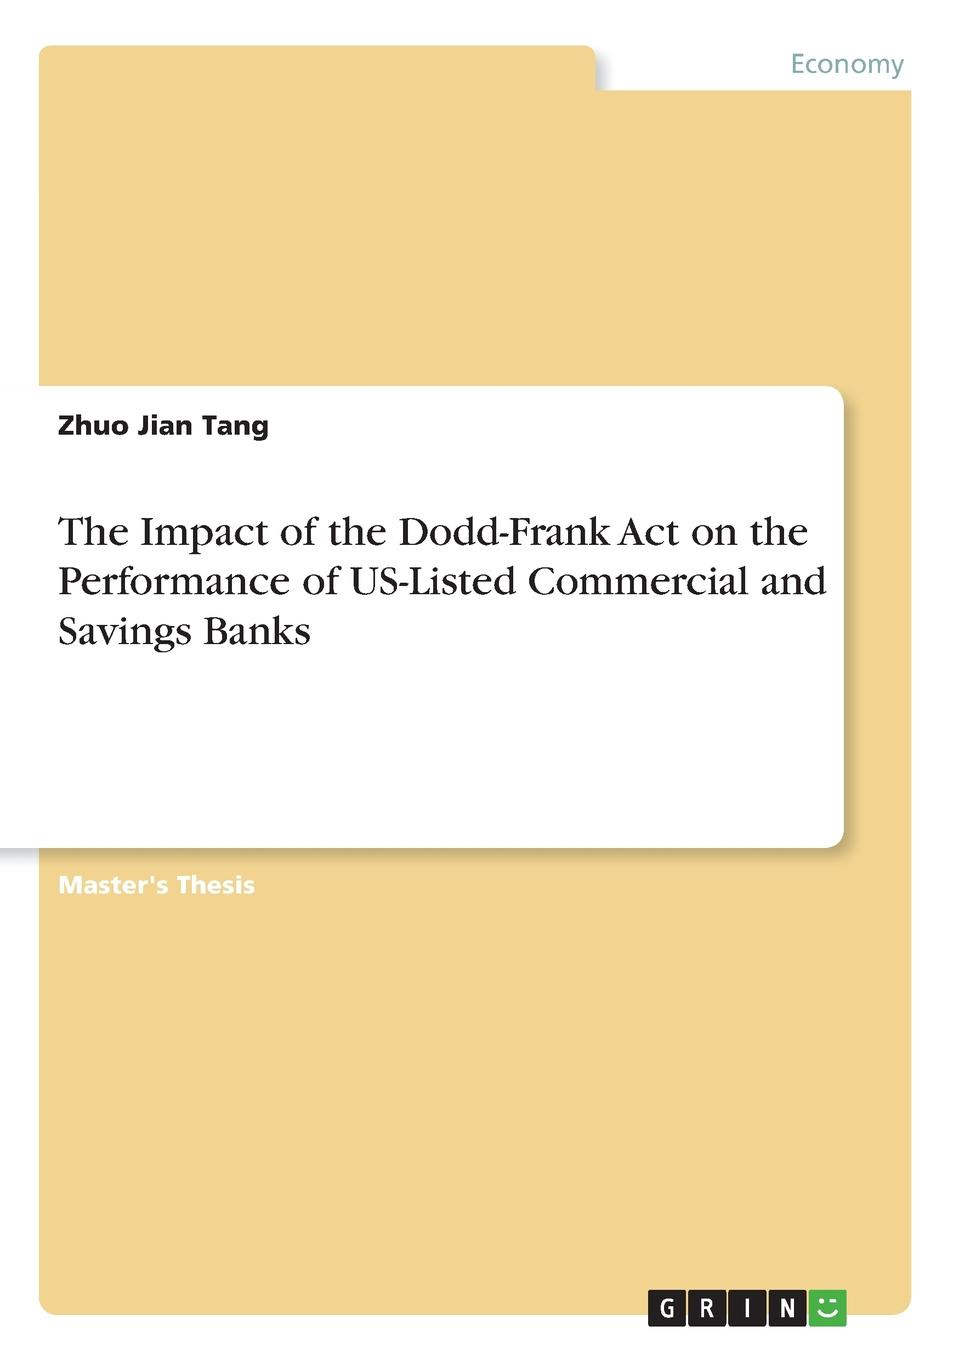 Zhuo Jian Tang The Impact of the Dodd-Frank Act on the Performance of US-Listed Commercial and Savings Banks david skeel the new financial deal understanding the dodd frank act and its unintended consequences